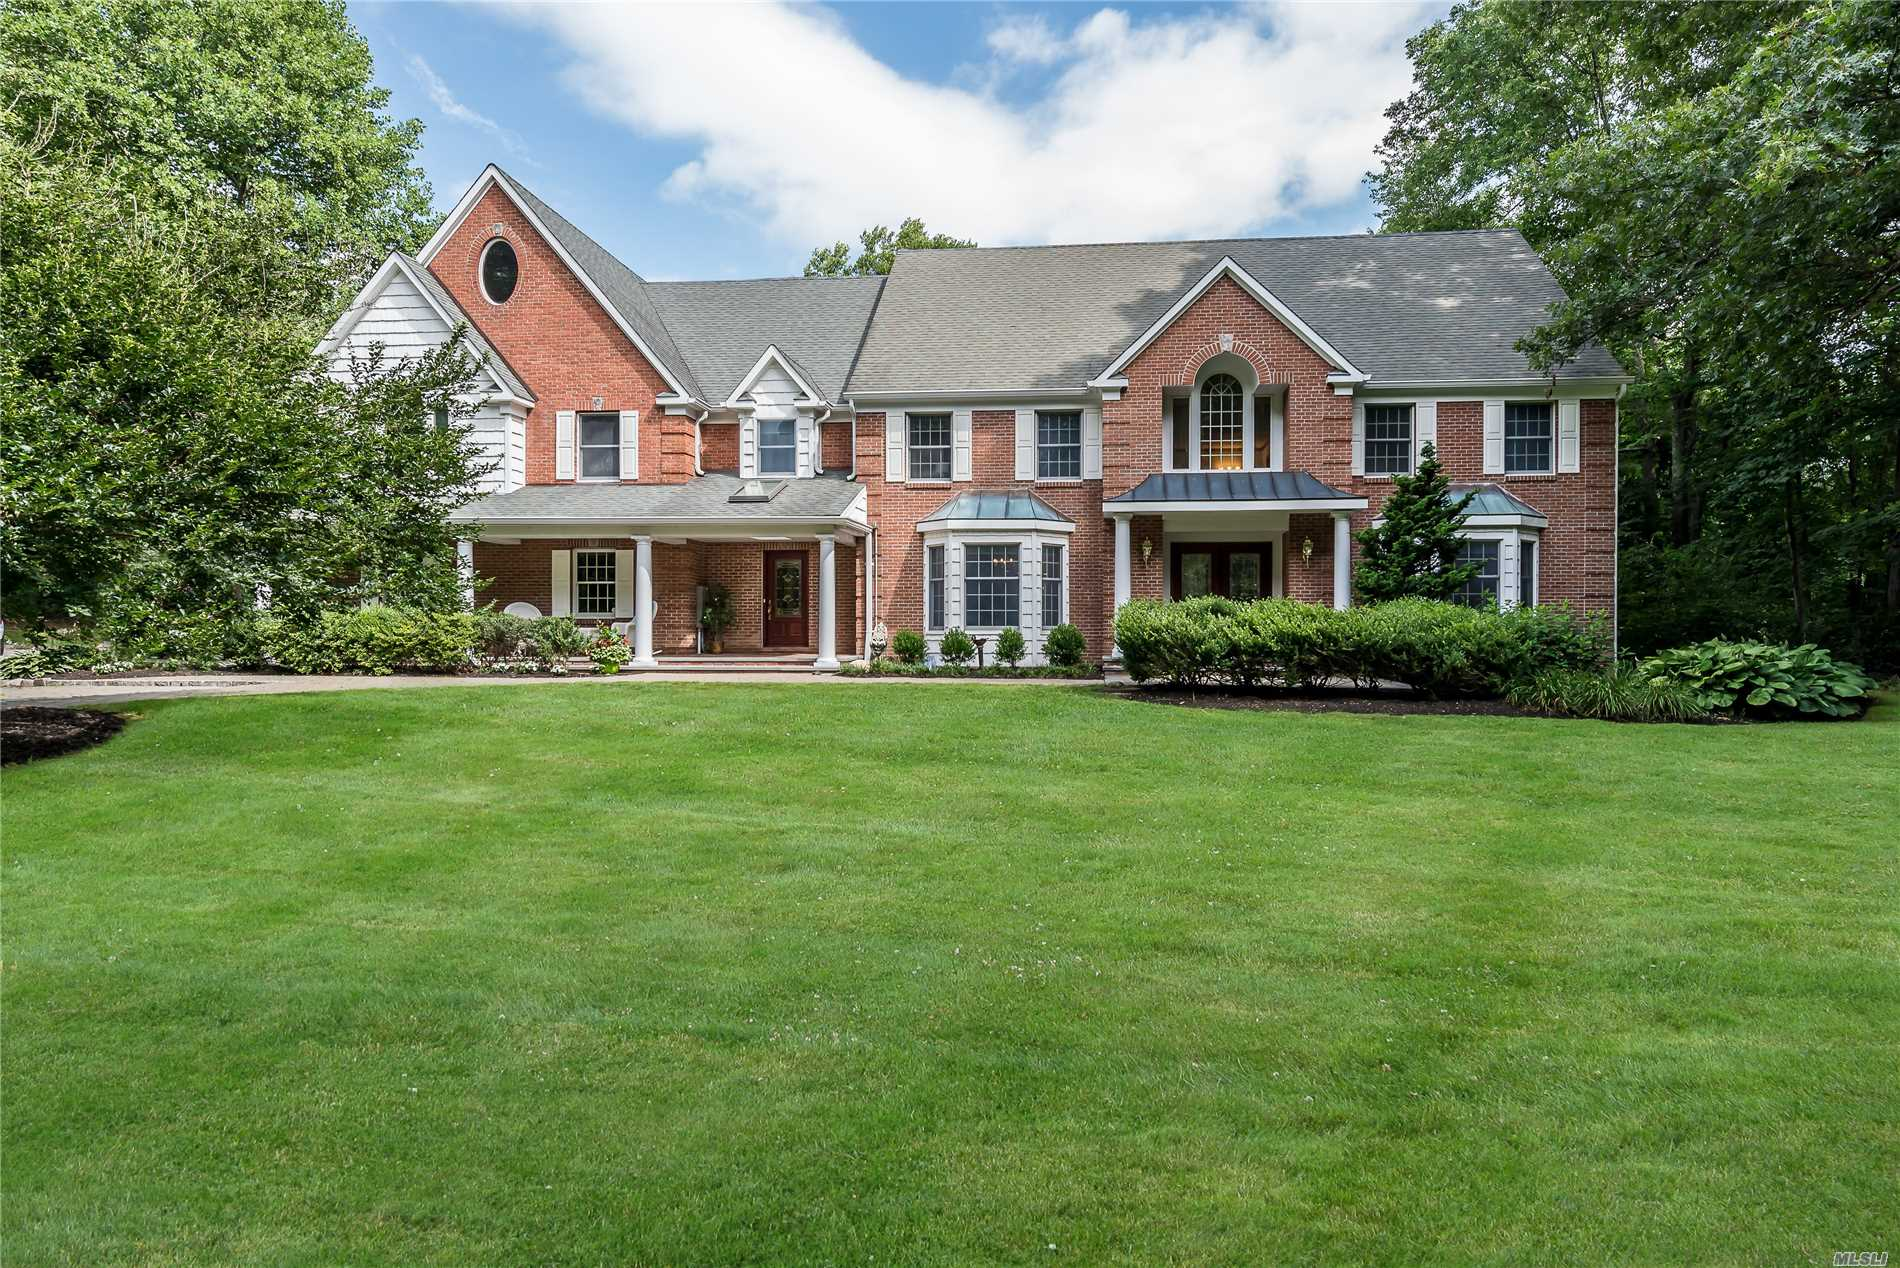 Spacious Custom Built Brick Colonial Nestled On 2.02 Flat Landscaped Acres On A Cul-De-Sac. 6 Bedrooms, 4.5 Baths. Expansive Eat-In Kitchen. Family Room With Fireplace. Office And/Or Bedroom Suite 1st Floor. In-Ground Pool With New Vinyl Liner. Horse Property. Fabulous Location.